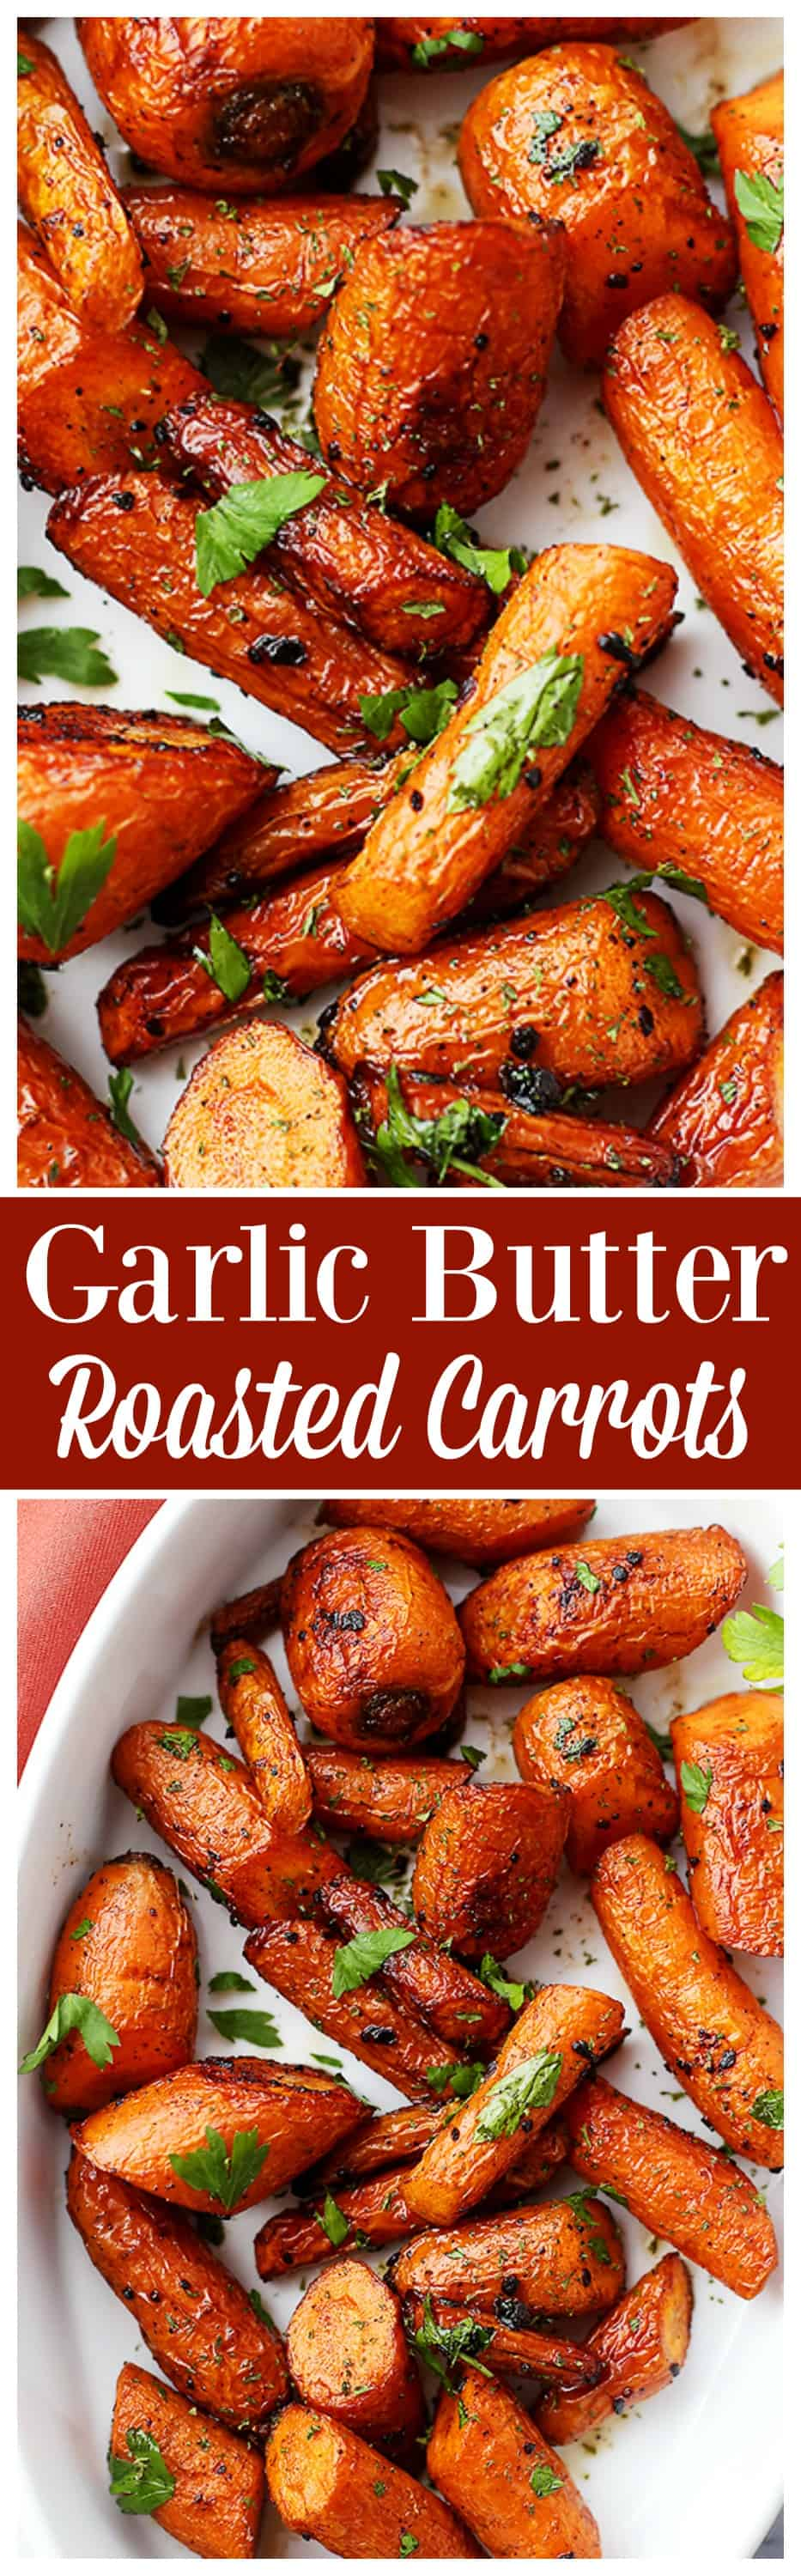 Ridiculously easy to make, tender, and SO incredibly delicious roasted #carrots with garlic butter. The best veggie #side_dish you'll ever make!